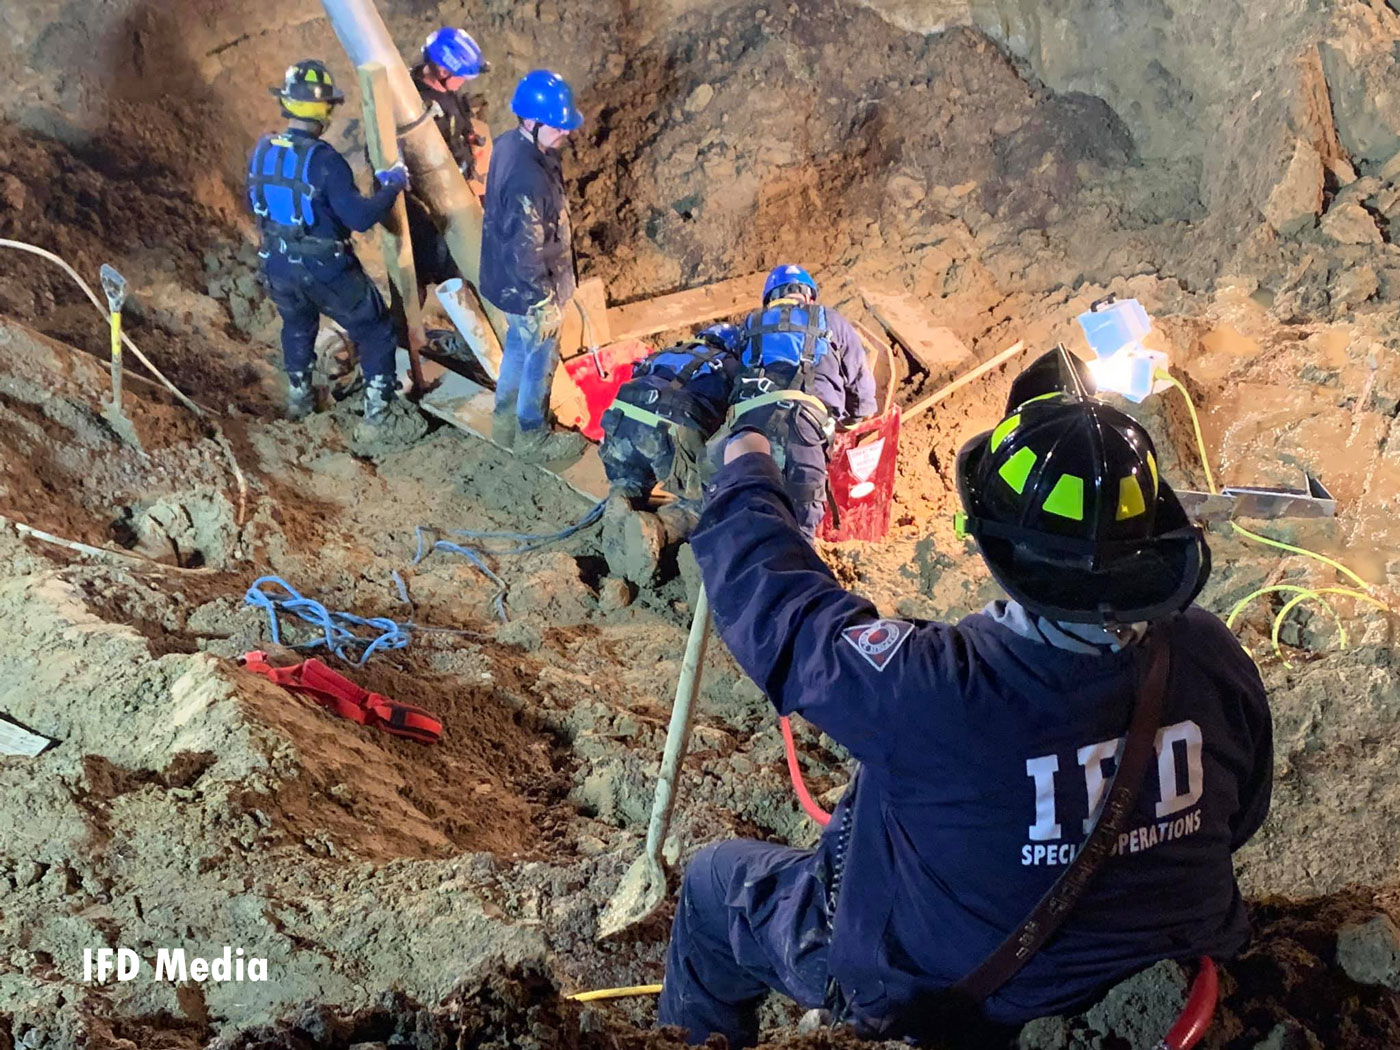 Once the heavy machinery work was completed, members could access the victim, who was deceased.